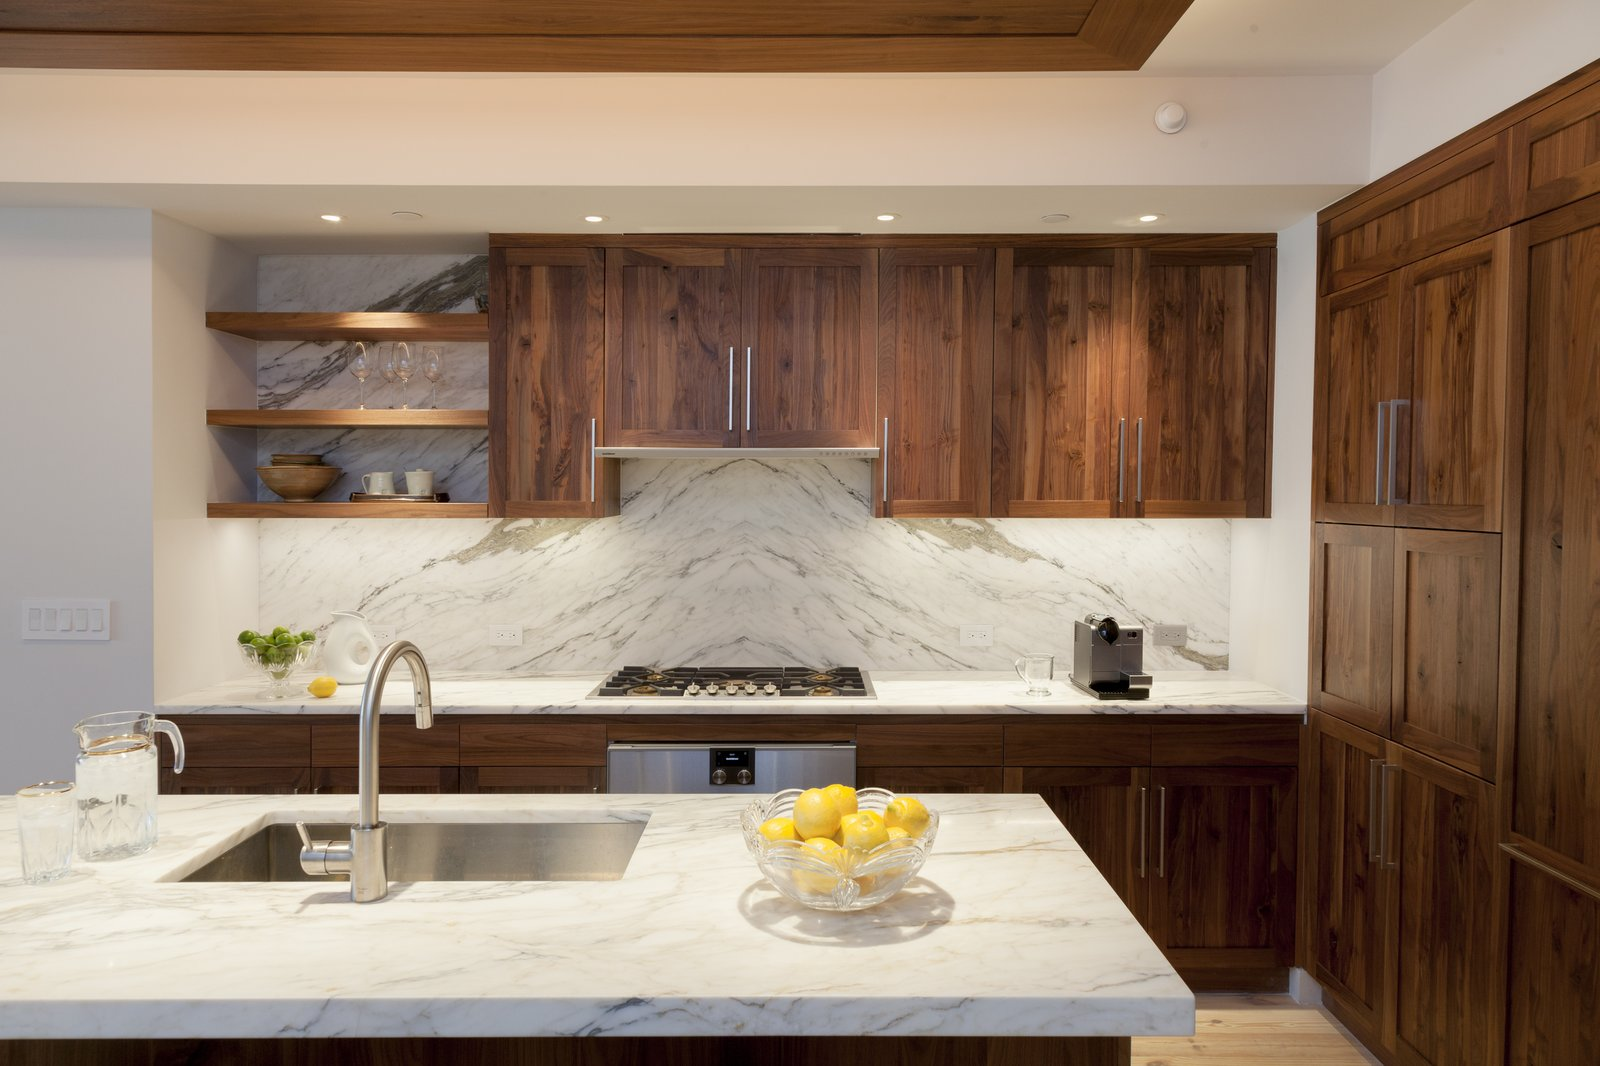 Kitchen, Marble, Wood, Stone Slab, Ceiling, Pendant, Light Hardwood, Accent, Recessed, Refrigerator, Wall Oven, Cooktops, Range, Range Hood, Wine Cooler, Ice Maker, Dishwasher, Microwave, and Undermount Walnut and book-matched  Calcutta kitchen  Best Kitchen Cooktops Recessed Accent Ice Maker Photos from Pierhouse At Brooklyn Bridge Park Condo